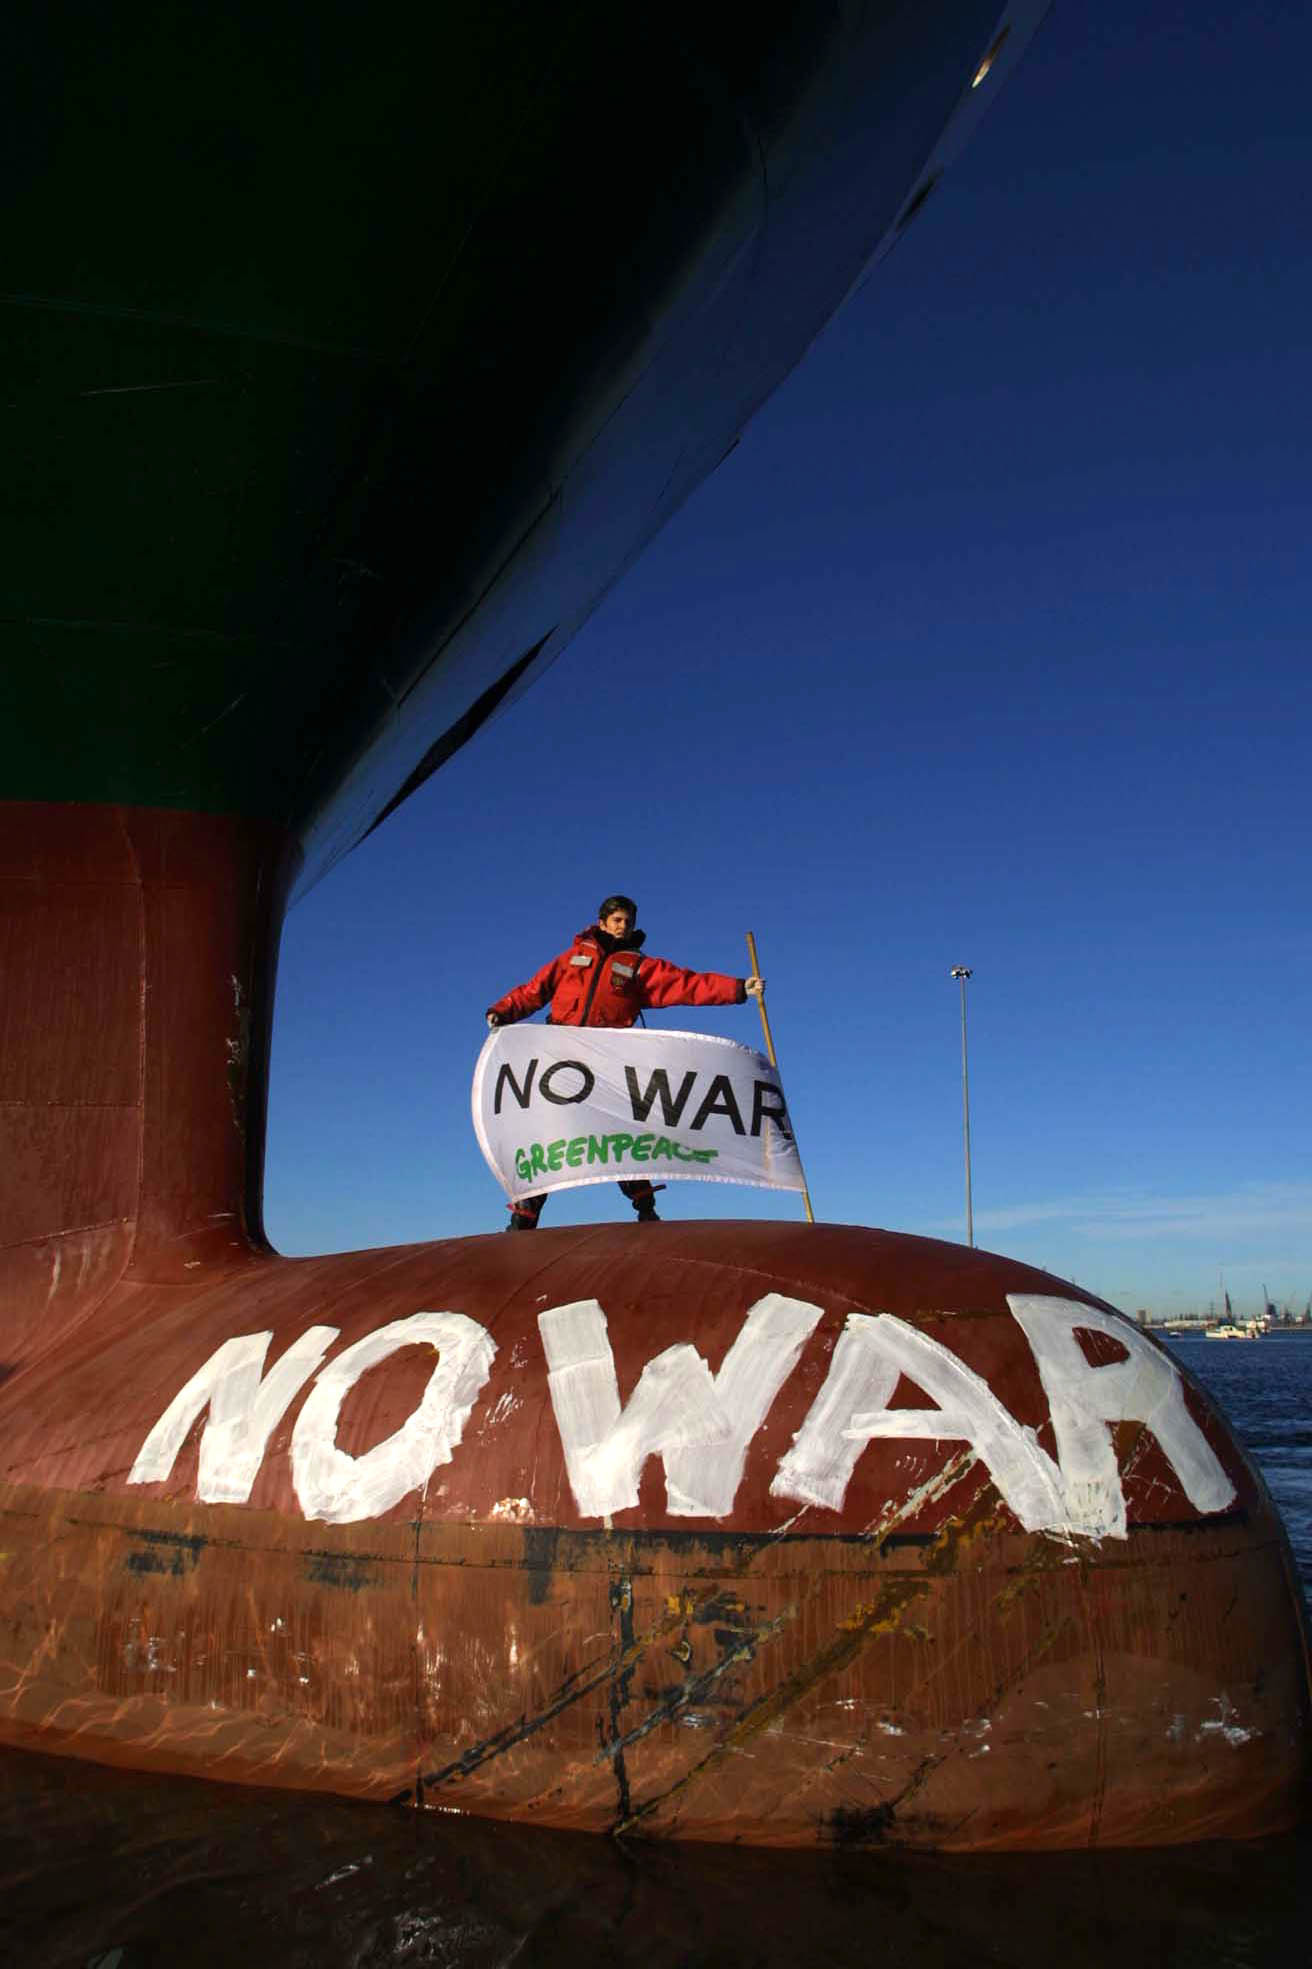 Activist with No War banner on a military supply vessel